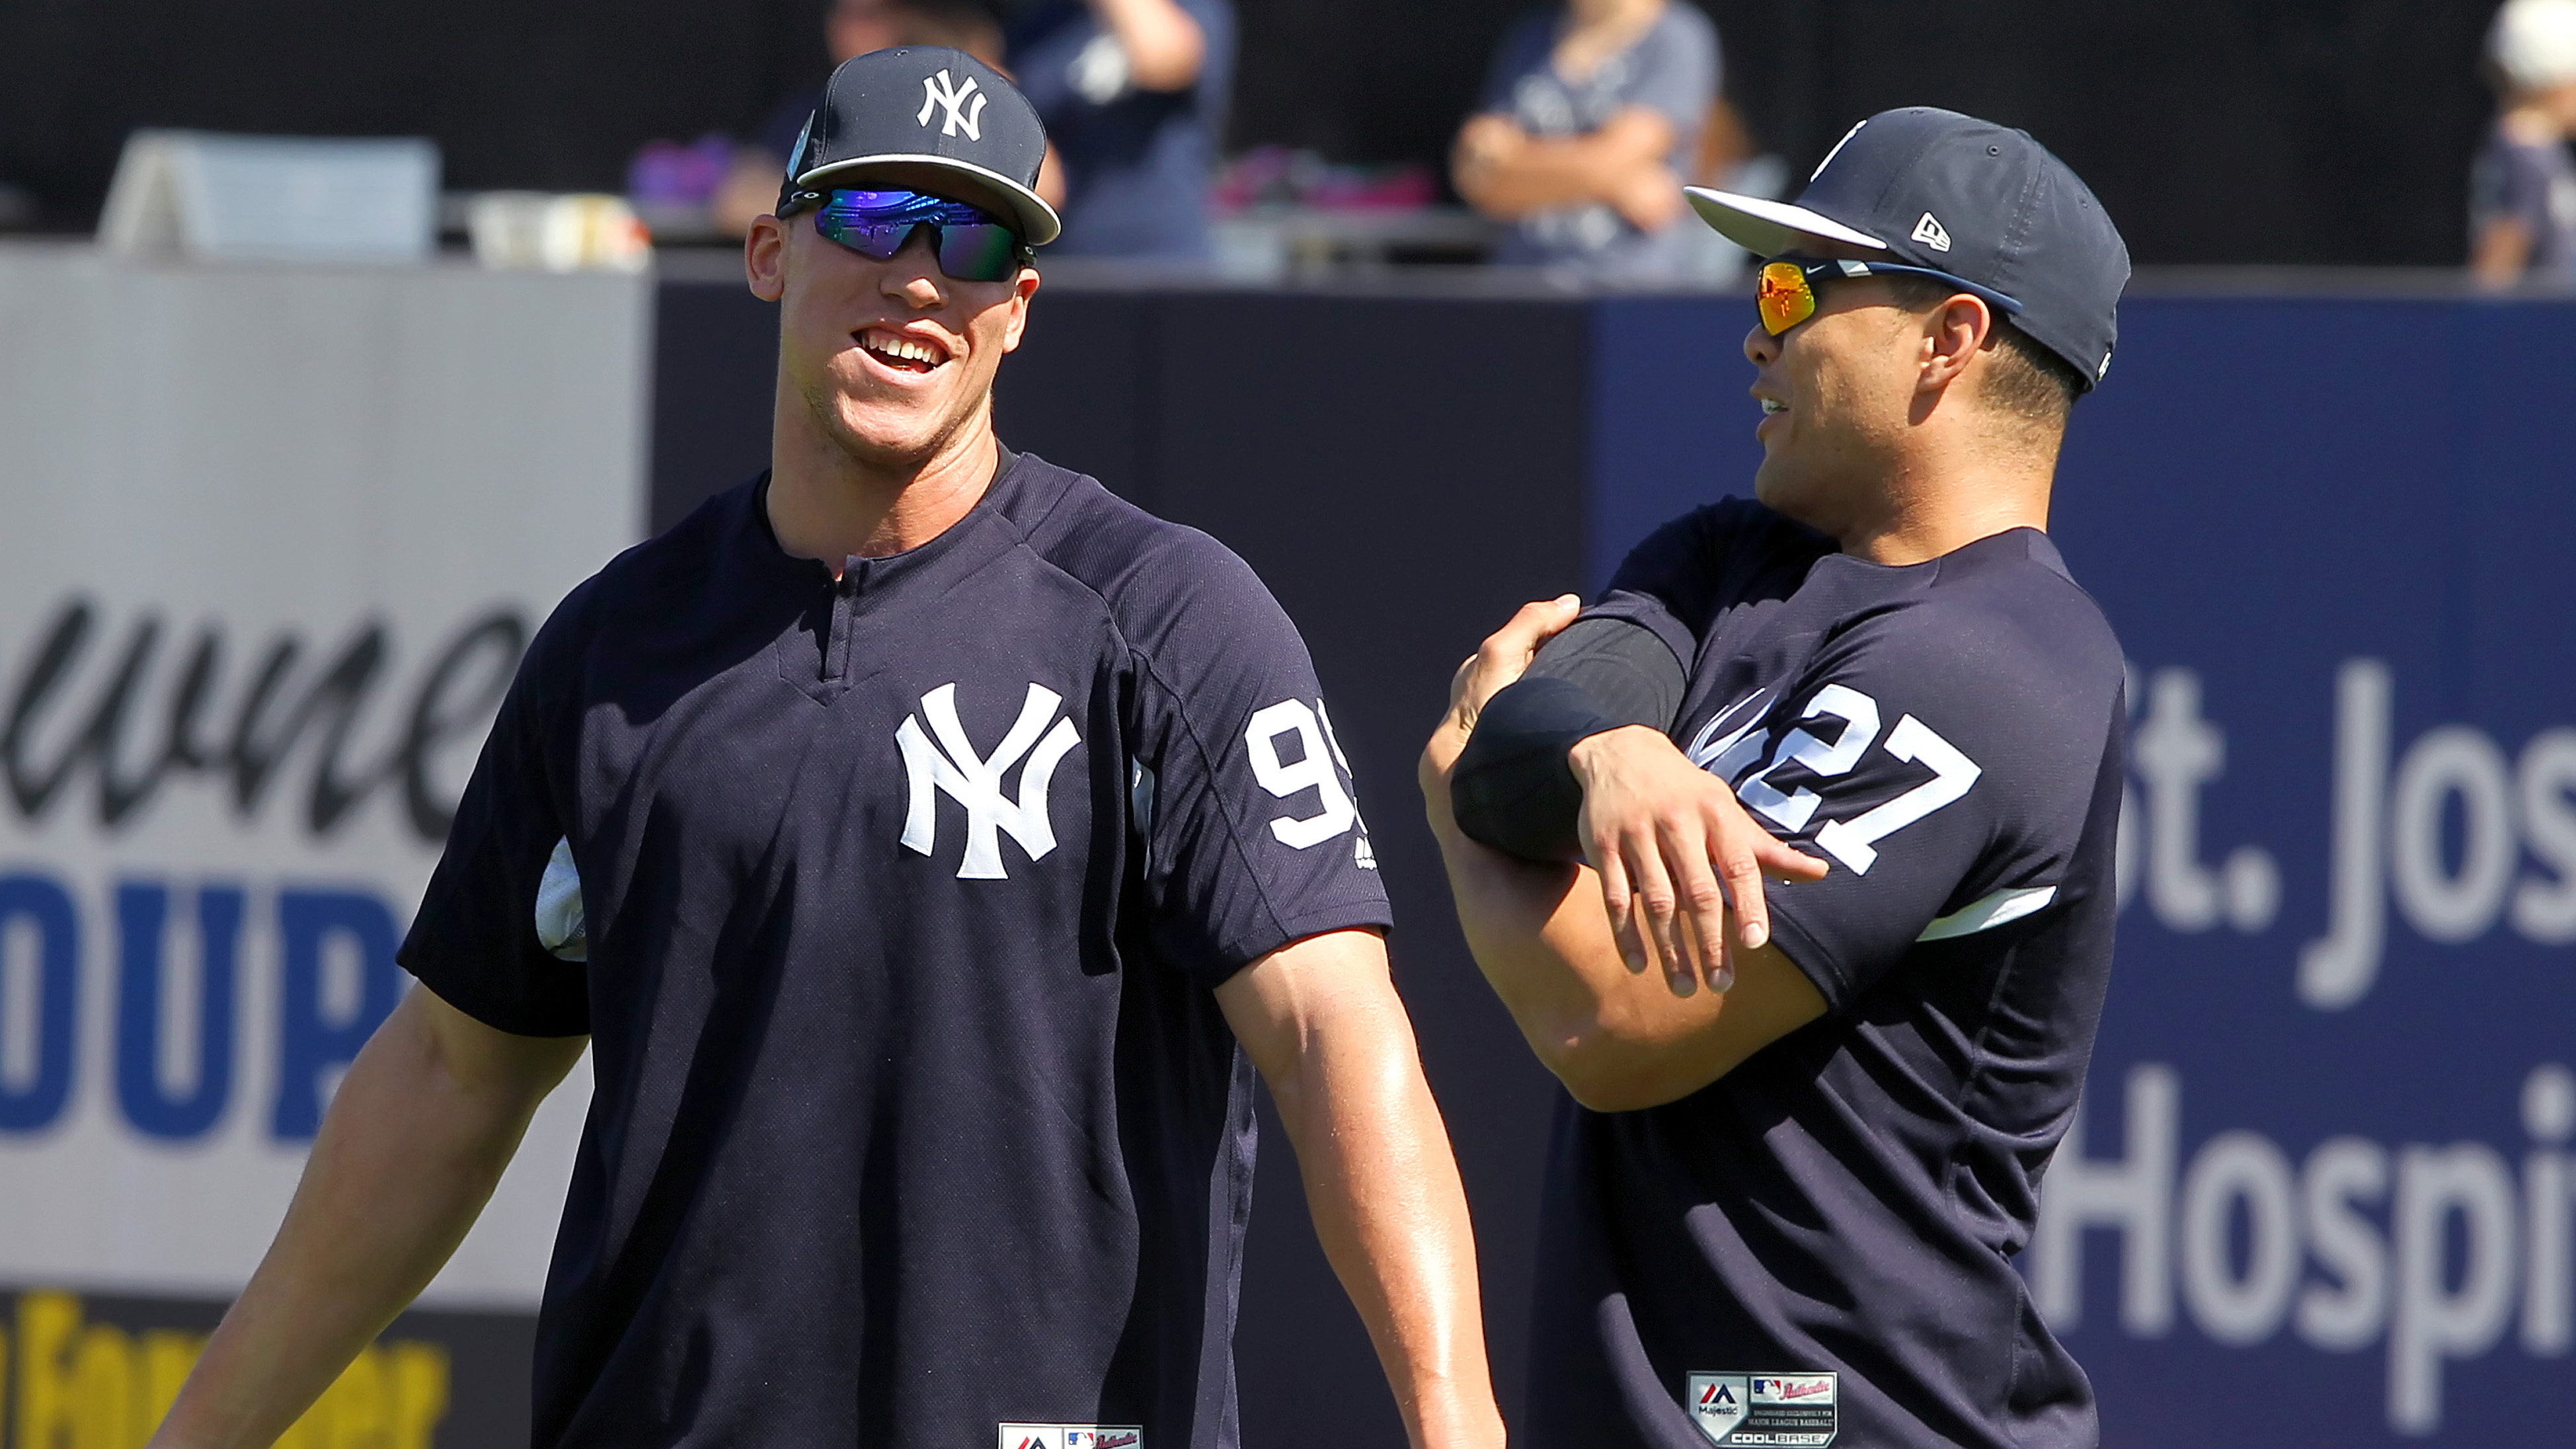 Yankees Will Open Stadium Gates Early So Fans Can Watch Judge and Stanton Mash in BP